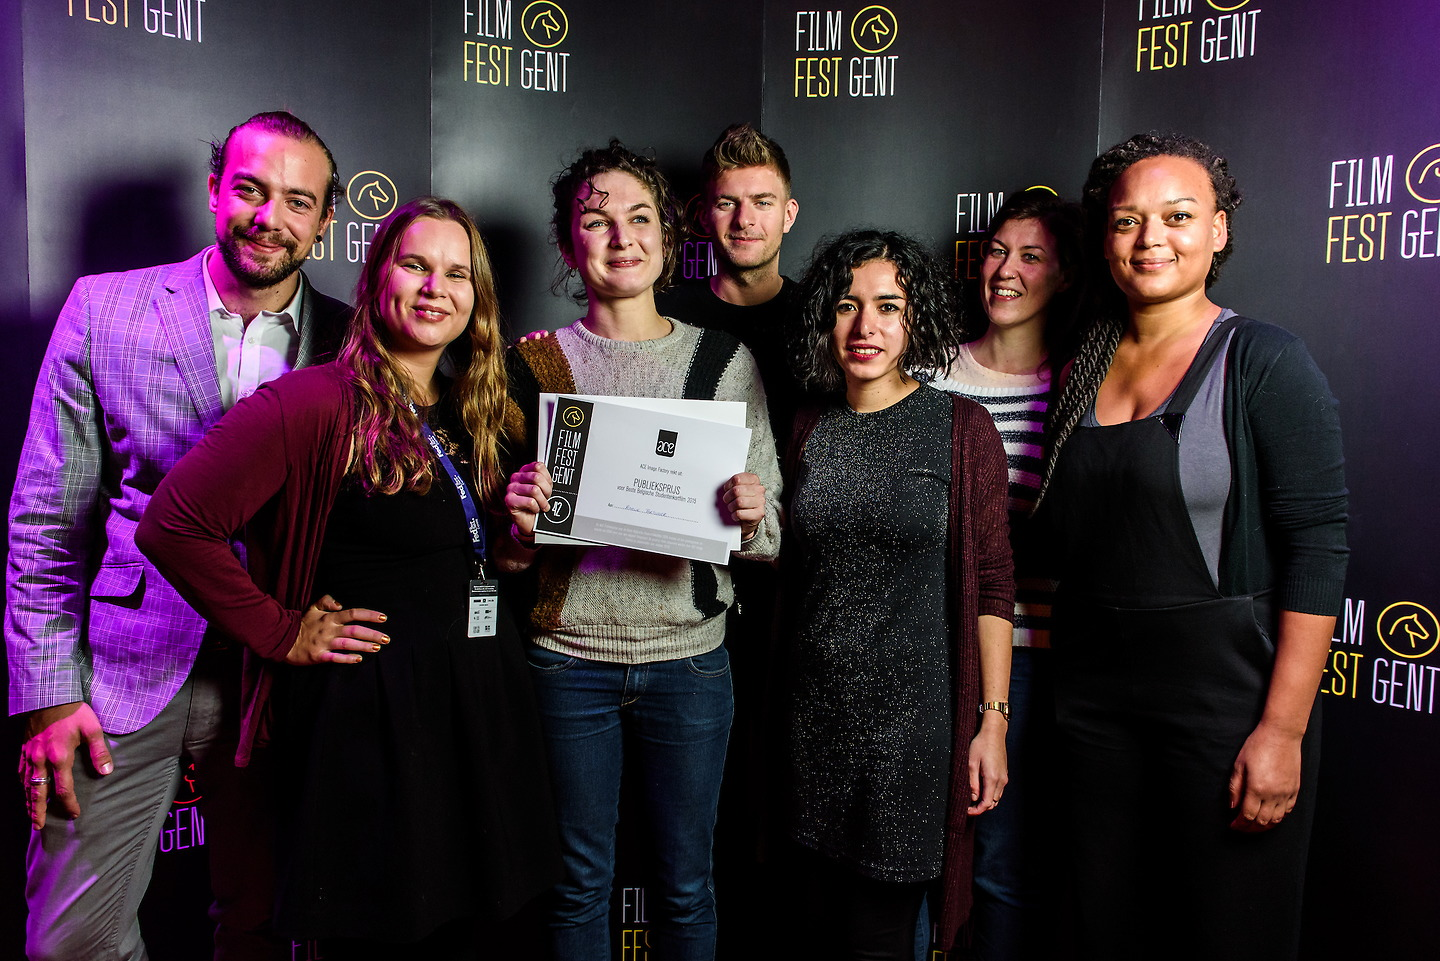 Film Fest Gent - Ace Image Factory Public Choice Award (18-10-2015)